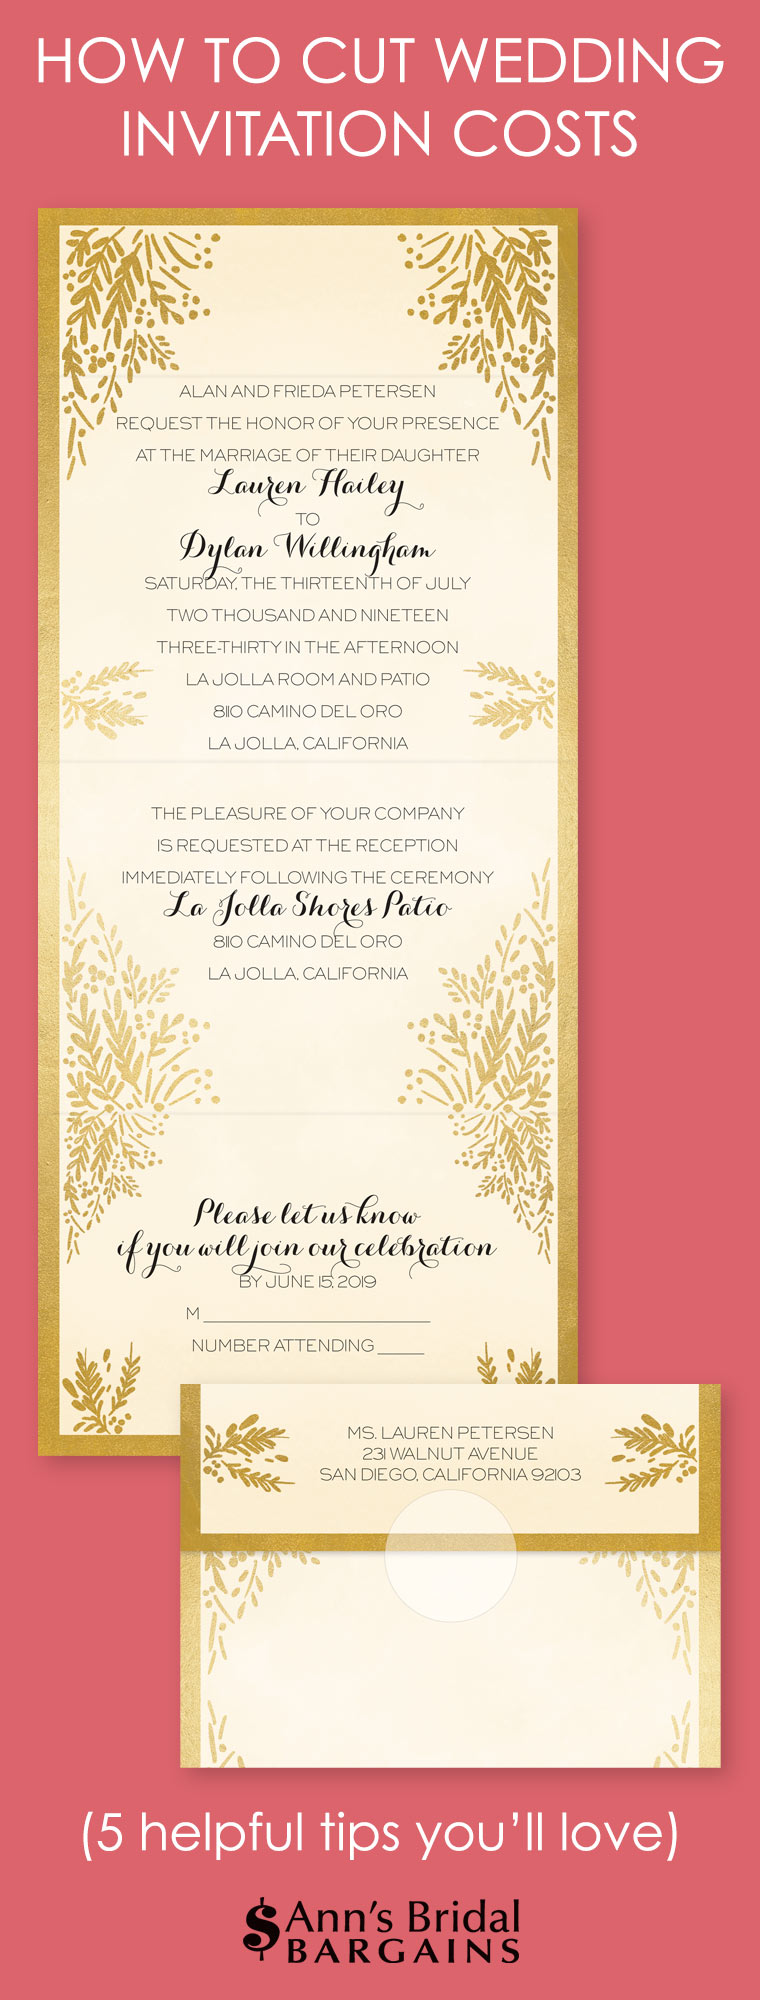 How to cut wedding invitation costs anns bridal bargains filmwisefo